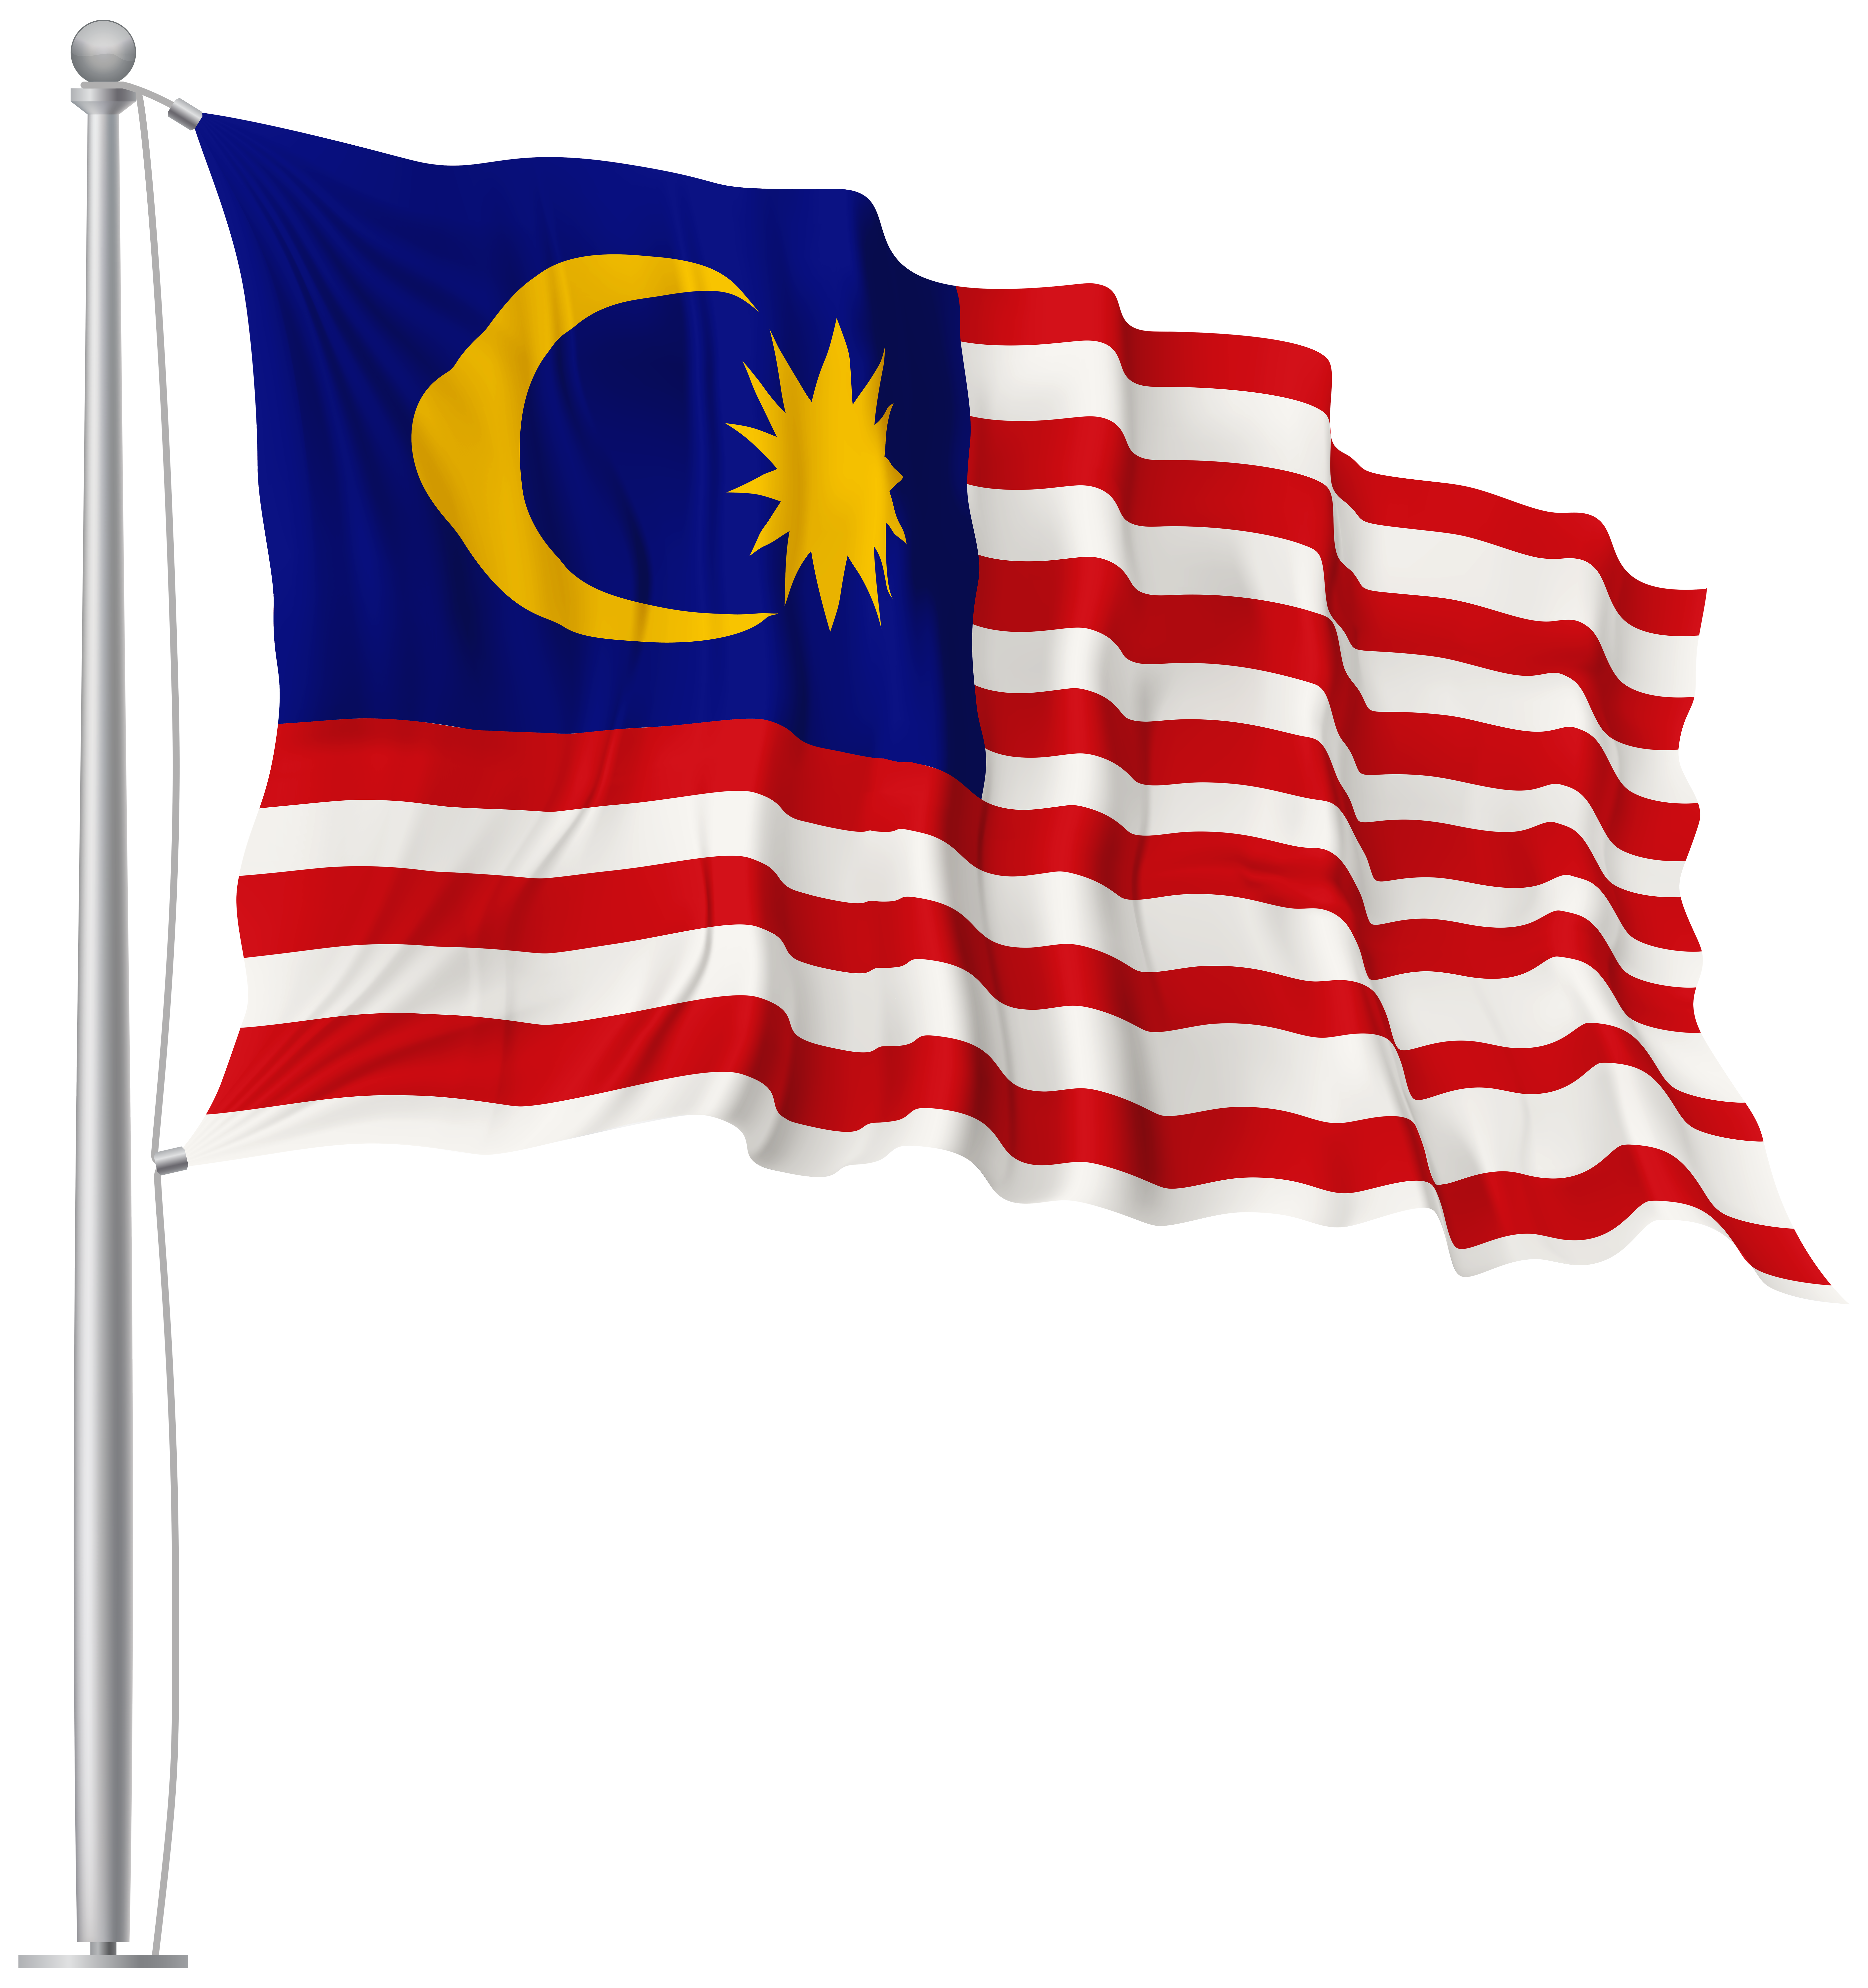 Malaysia waving flag image. Flags png banner library stock